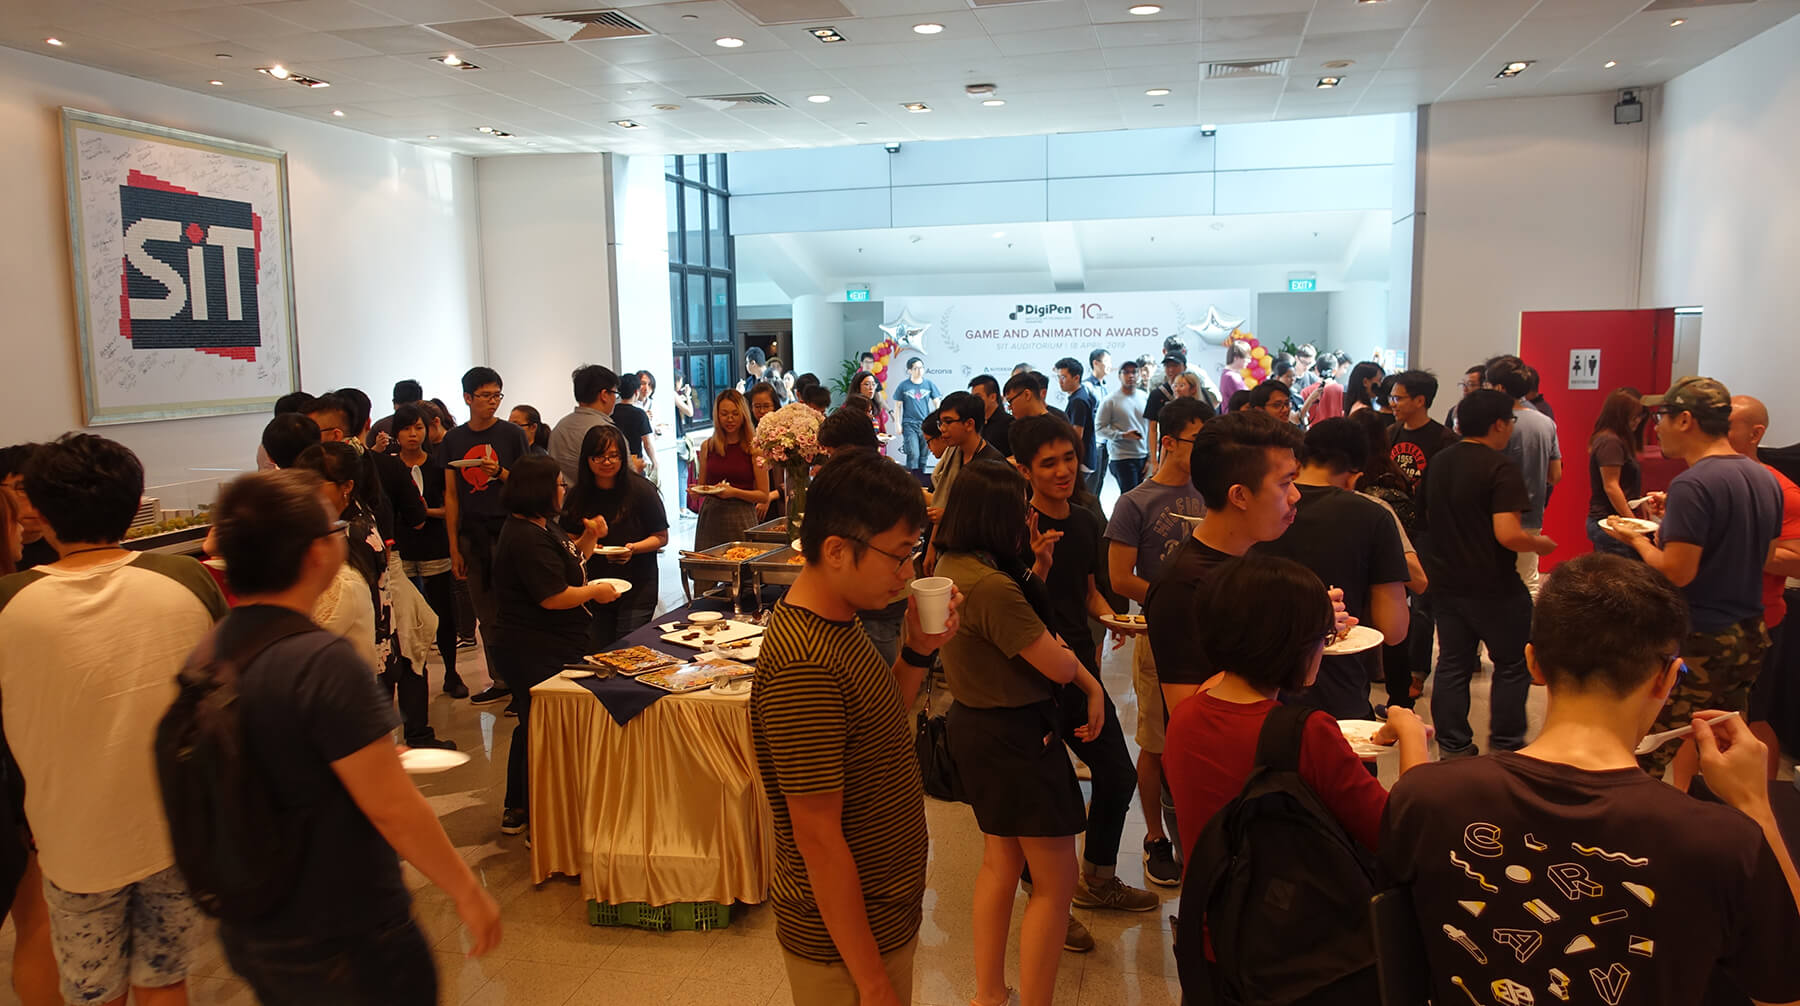 Many students mingle and enjoy refreshments on campus in celebration of the DigiPen Game and Animation Awards.